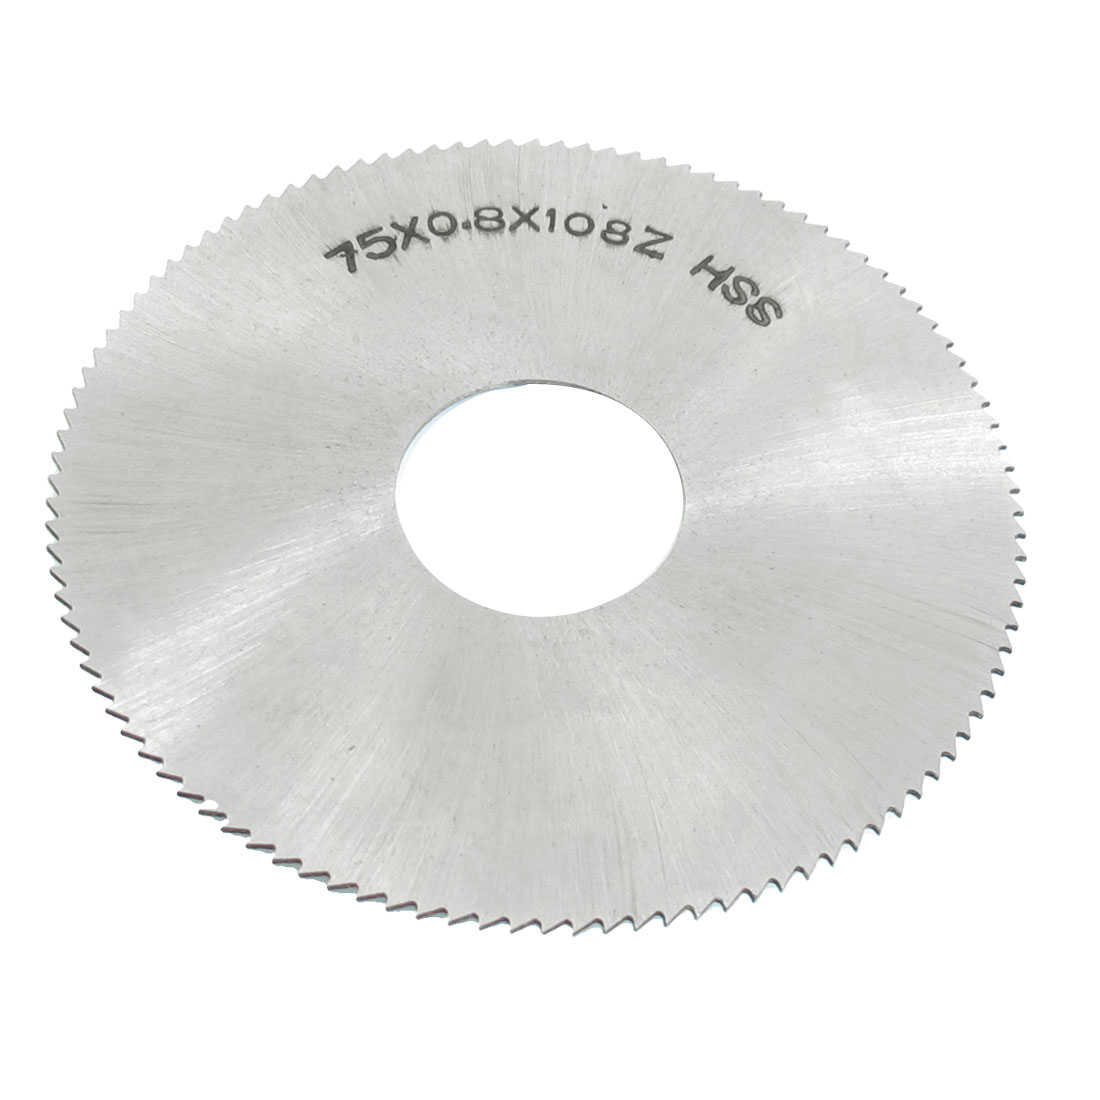 Unique Bargains 2 15/16' x 7/8' x 1/32' Circular Rotated HSS Slitting Saw 108 Teeth 108T